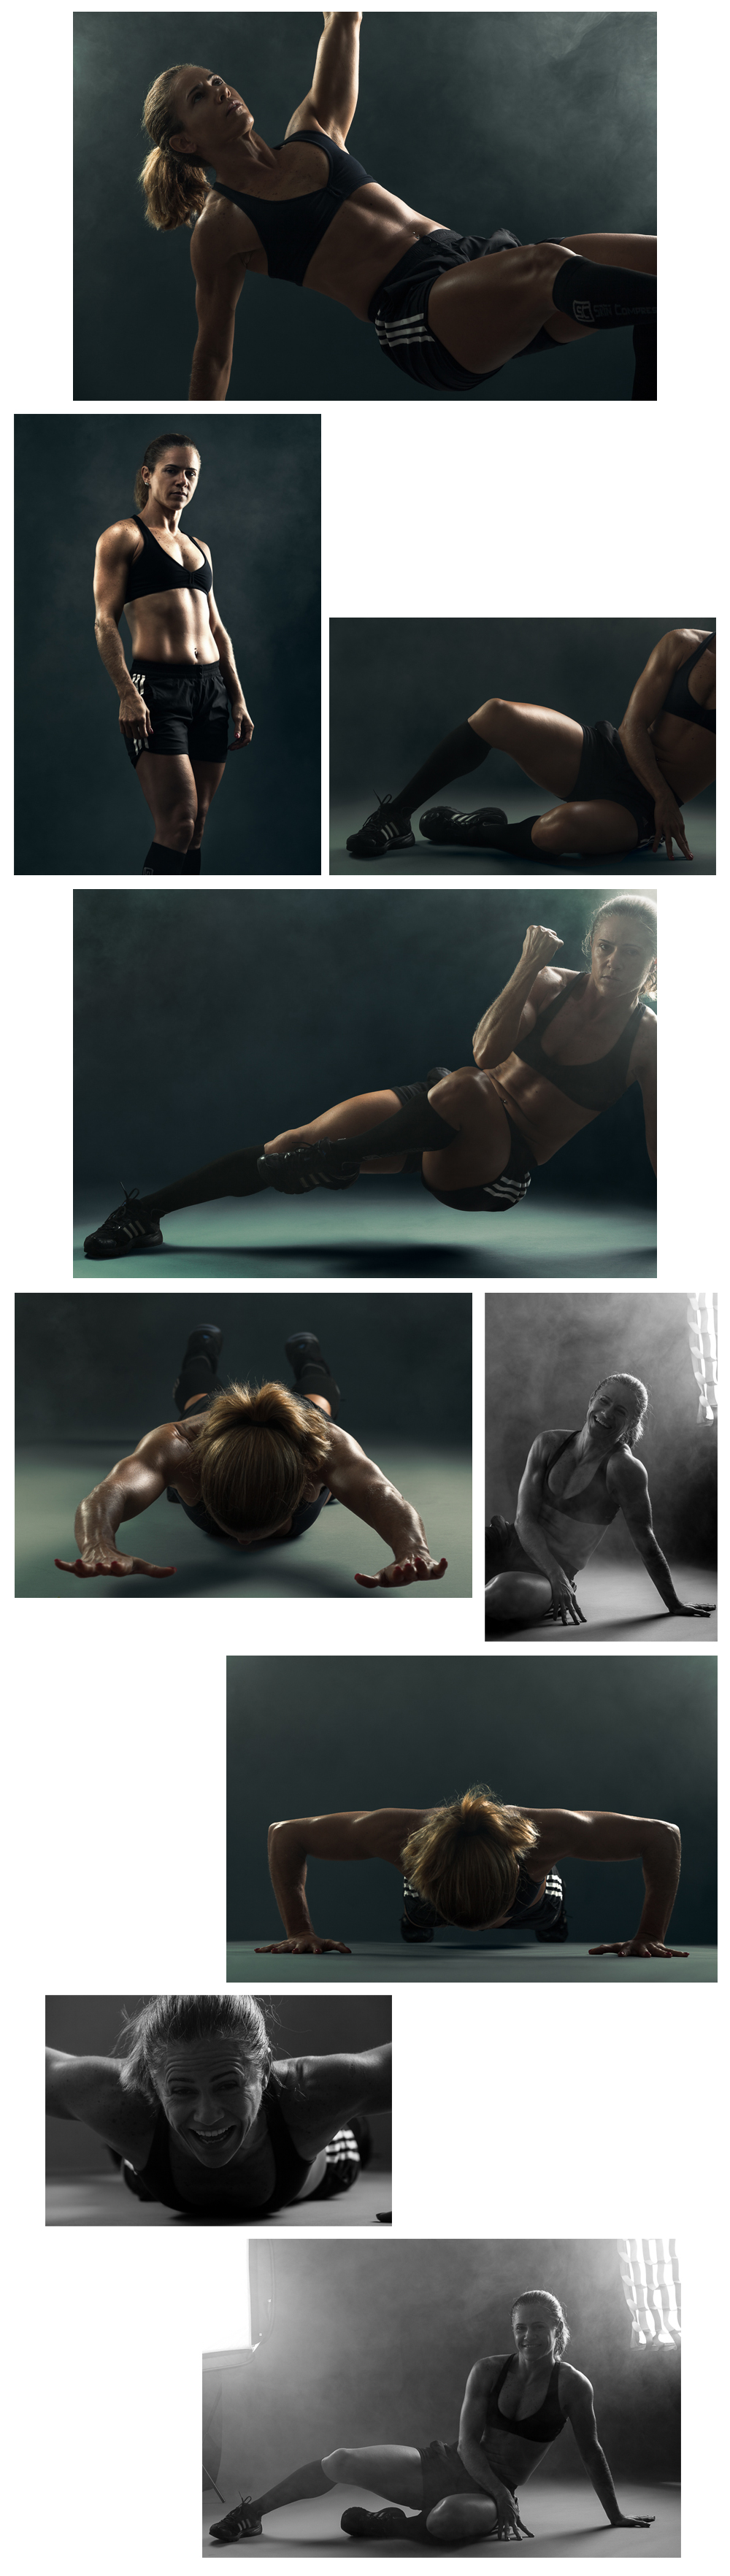 Fitness sport photo session